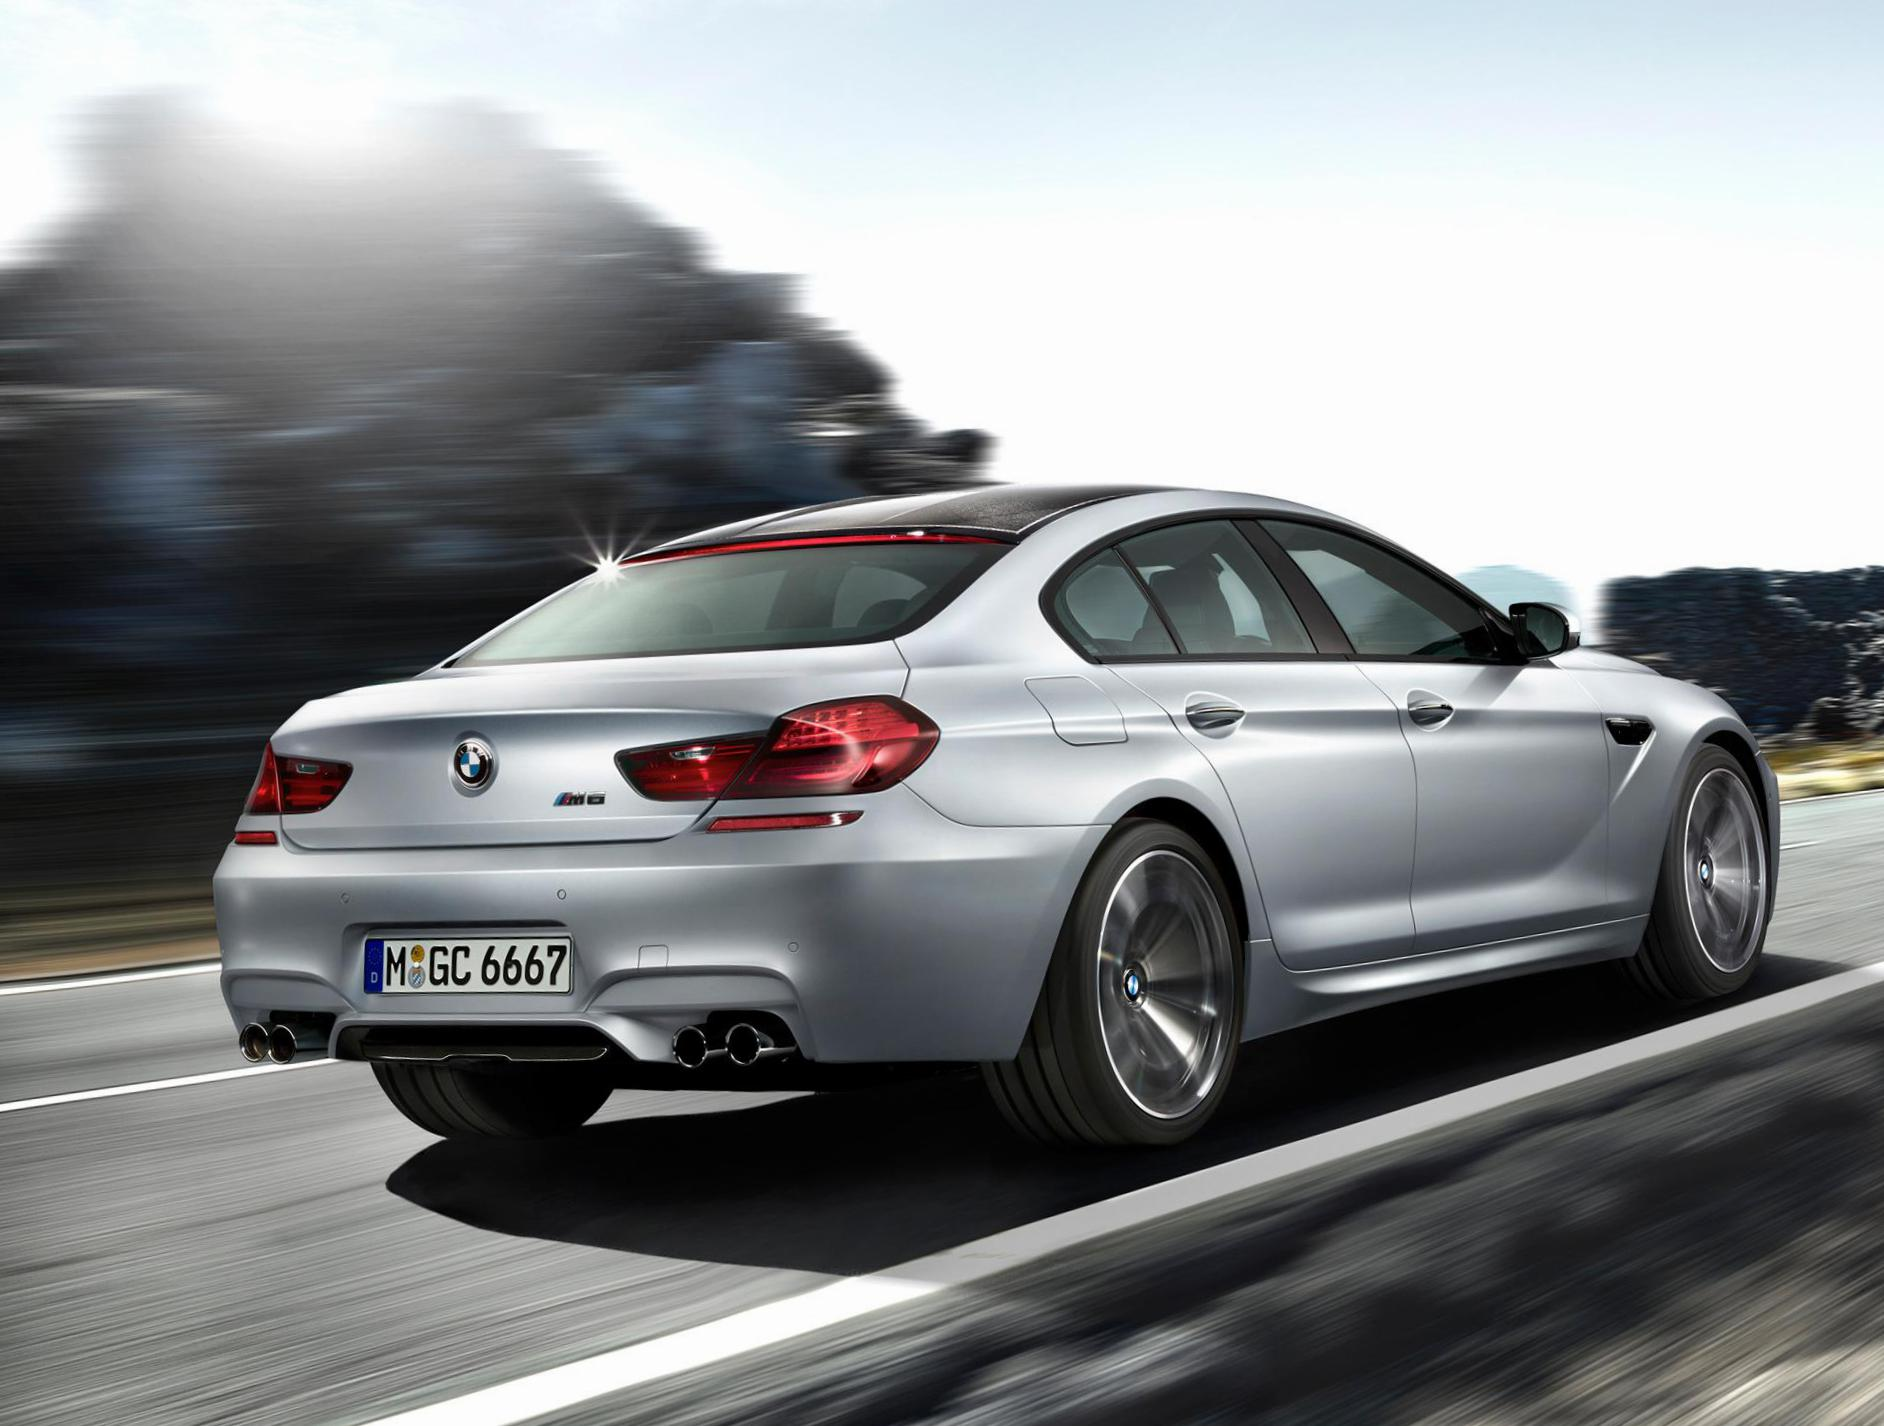 M6 Gran Coupe (F06) BMW lease sedan